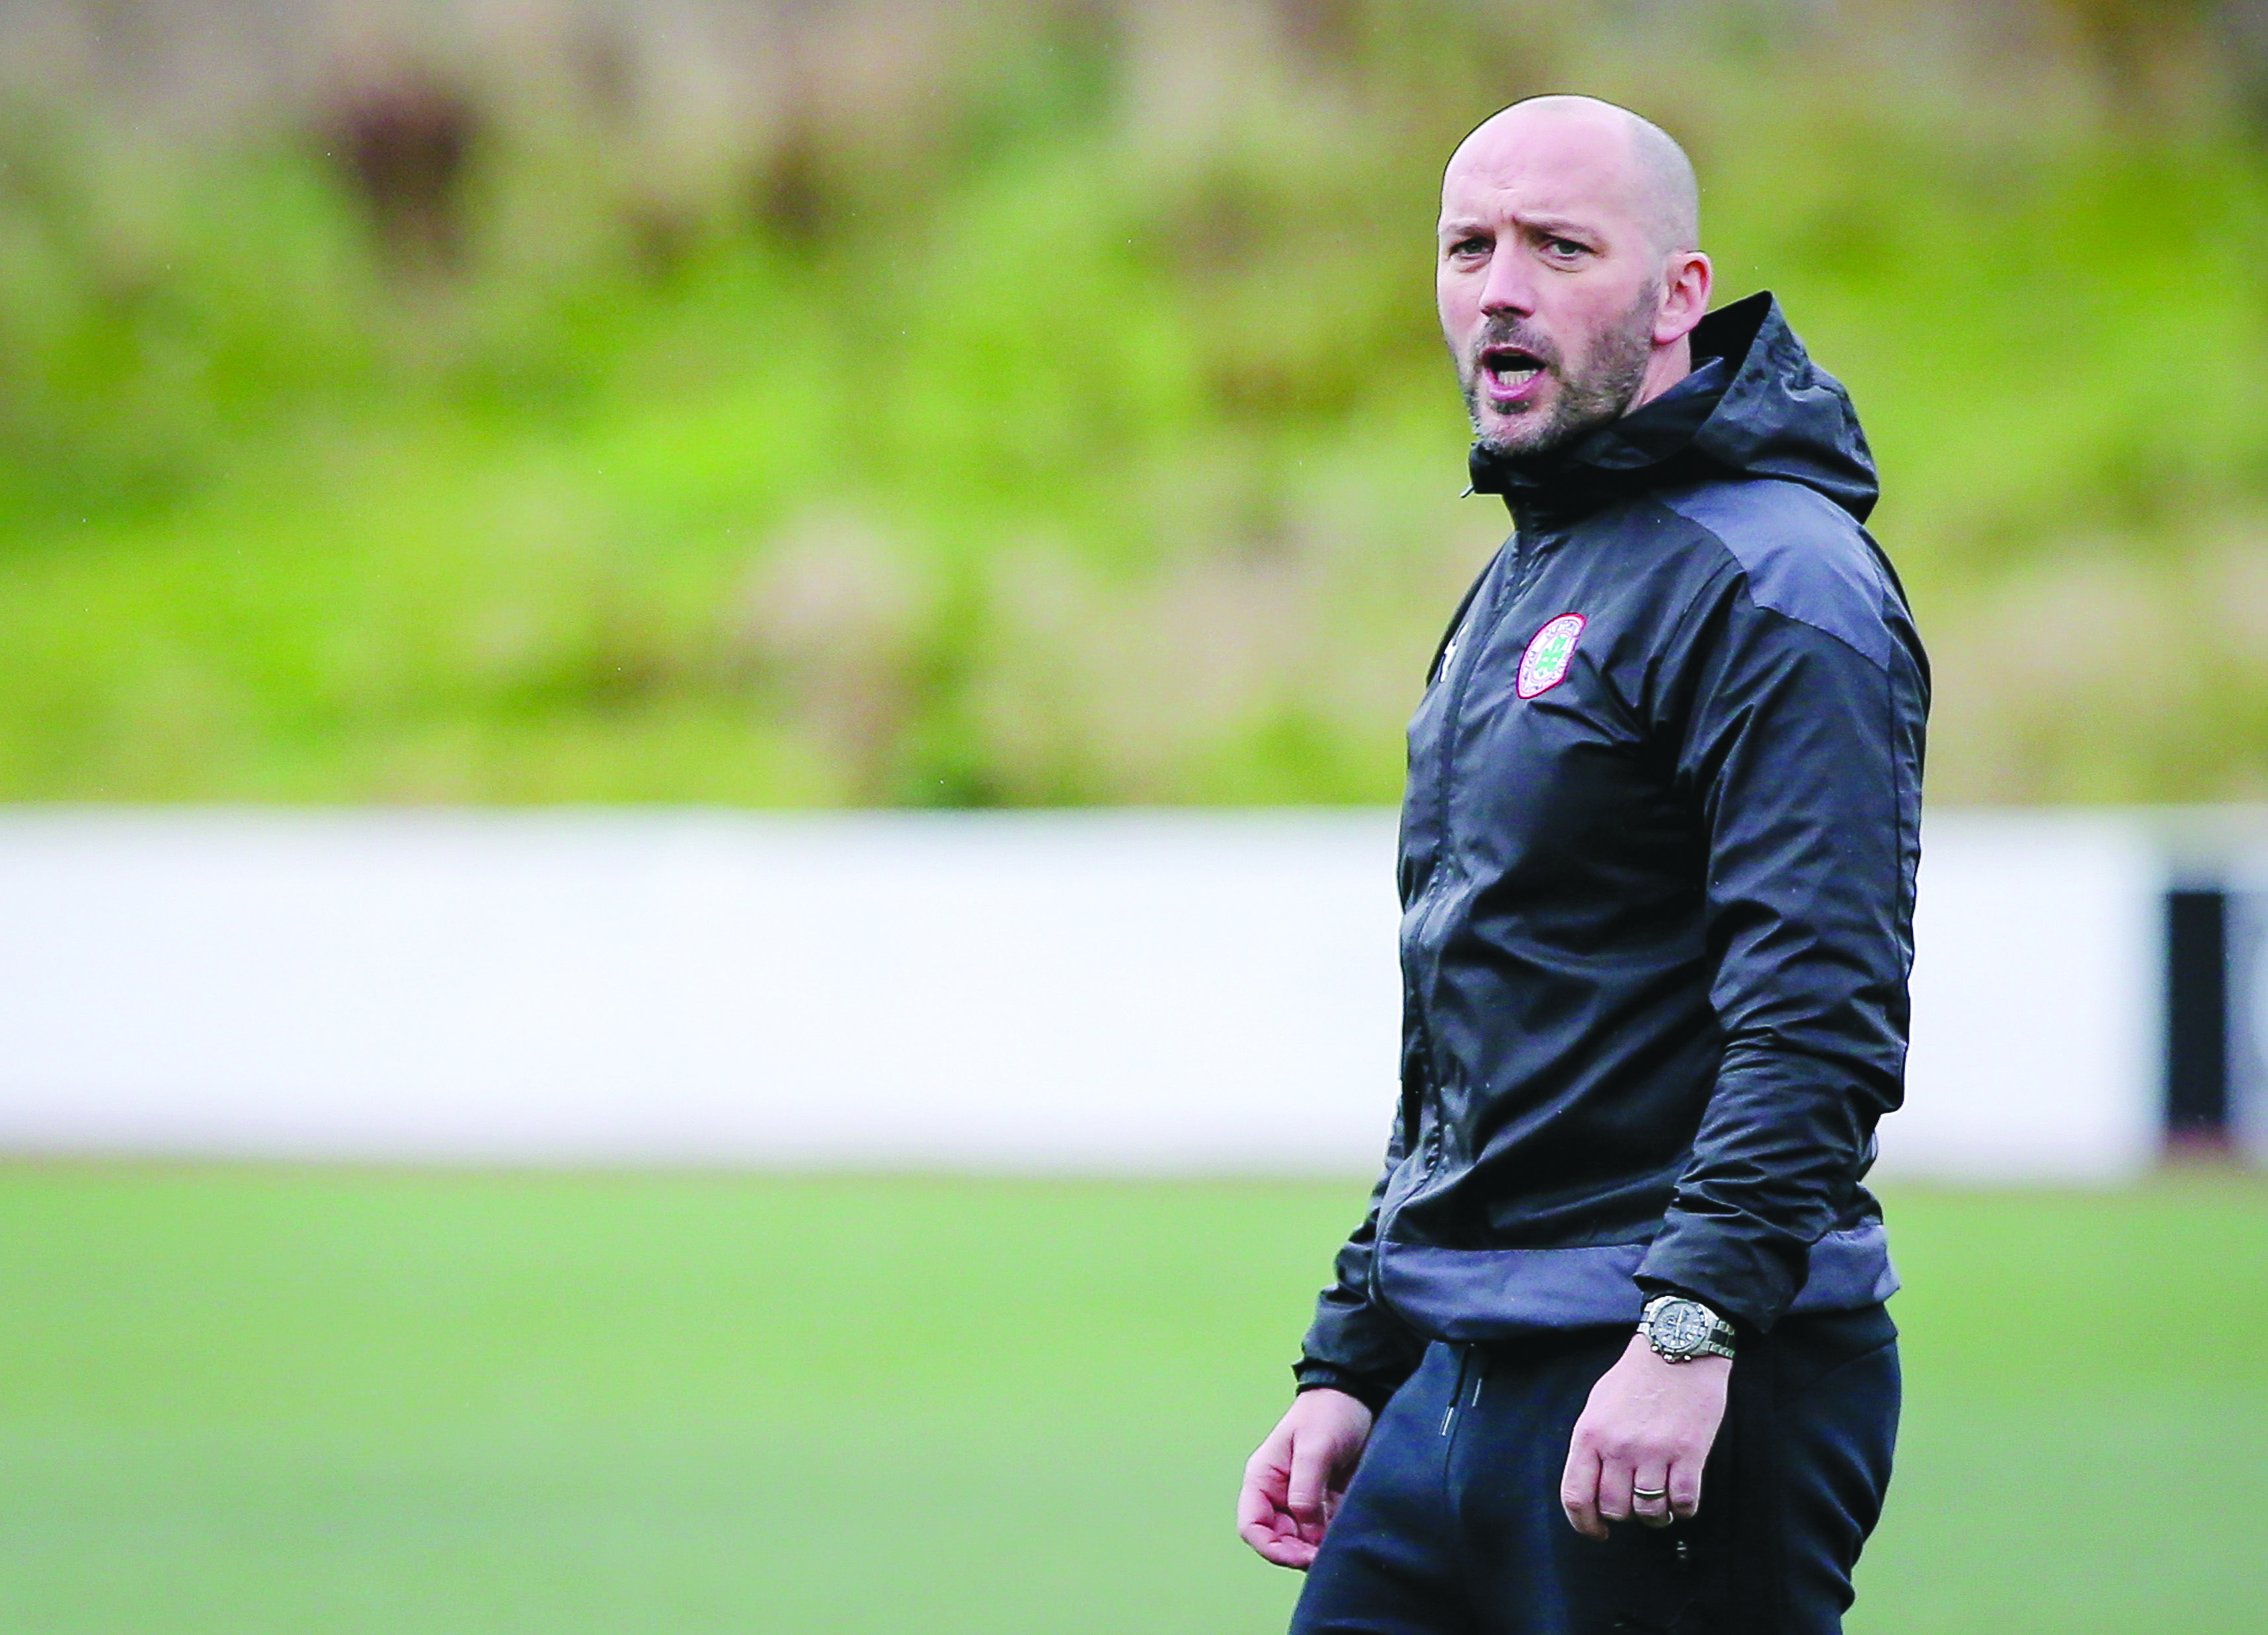 Cliftonville manager Paddy McLaughlin has praised the impact of younger players including Odhran Casey who have come into the team as the Reds endure a luckless period with injuries to key players